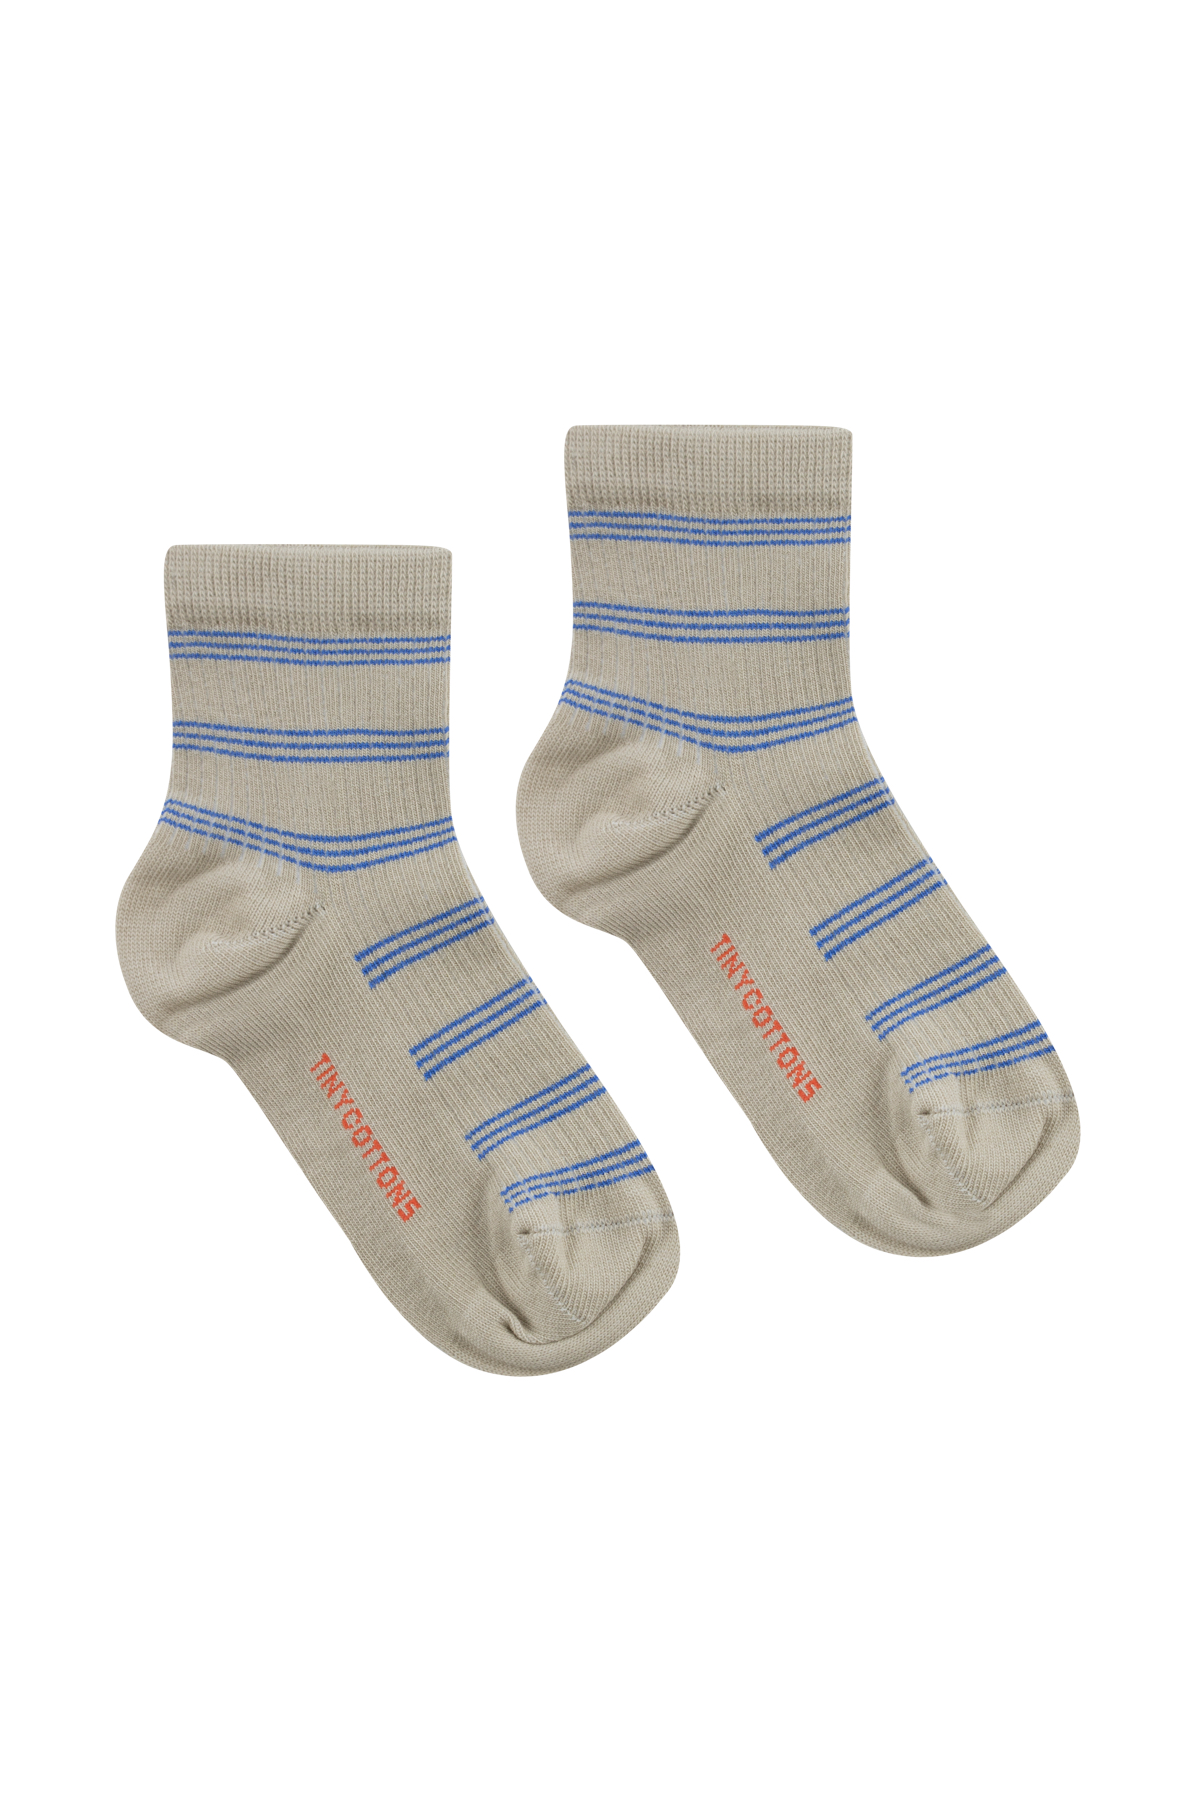 tinycottons retro stripes quarter socks light olive